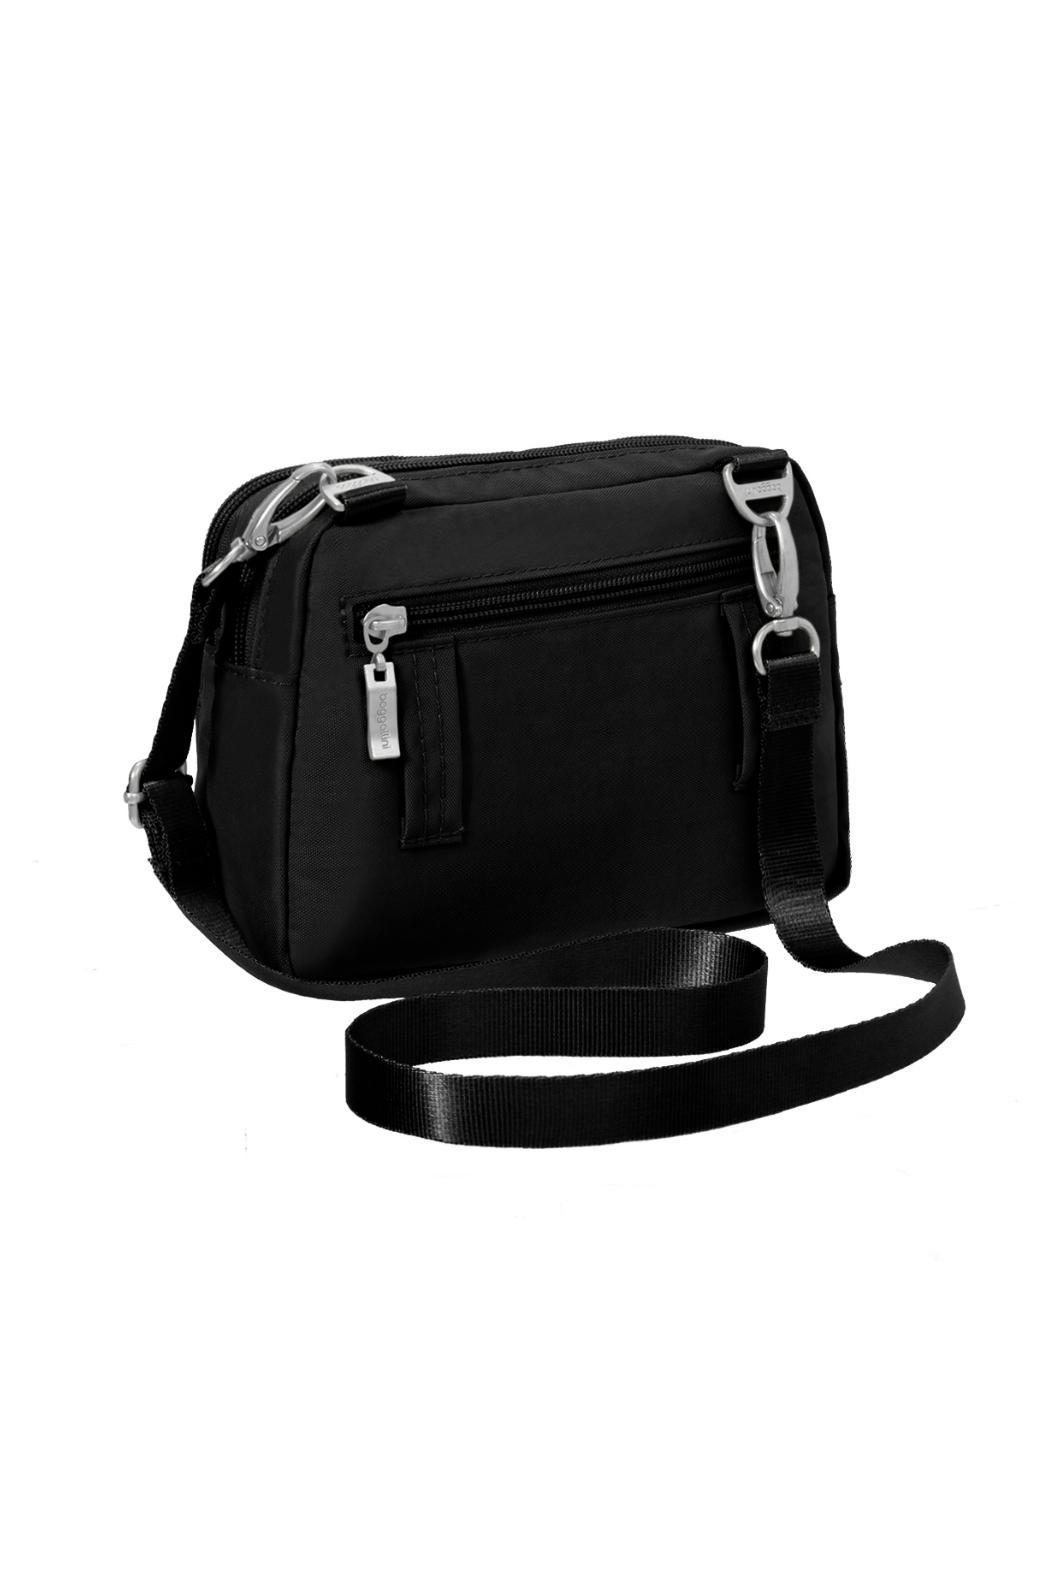 a199c29378ae Baggallini Triple Zip Bagg from Vancouver by Jet-Lag Travel Fashion ...